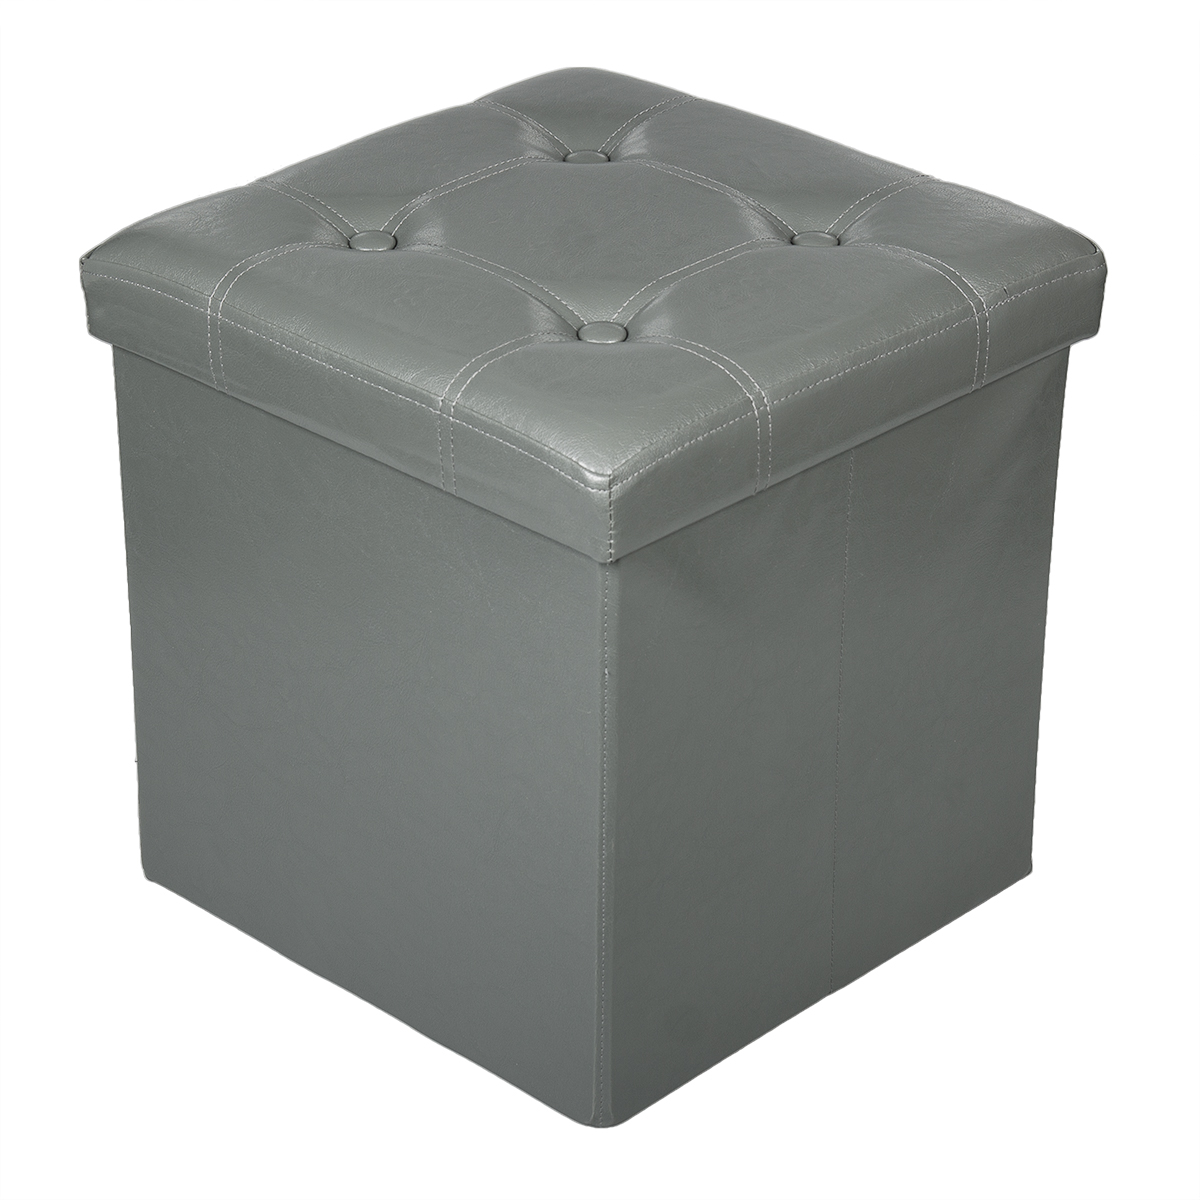 Storage ottoman faux leather collapsible foldable seat for Storage ottoman seat